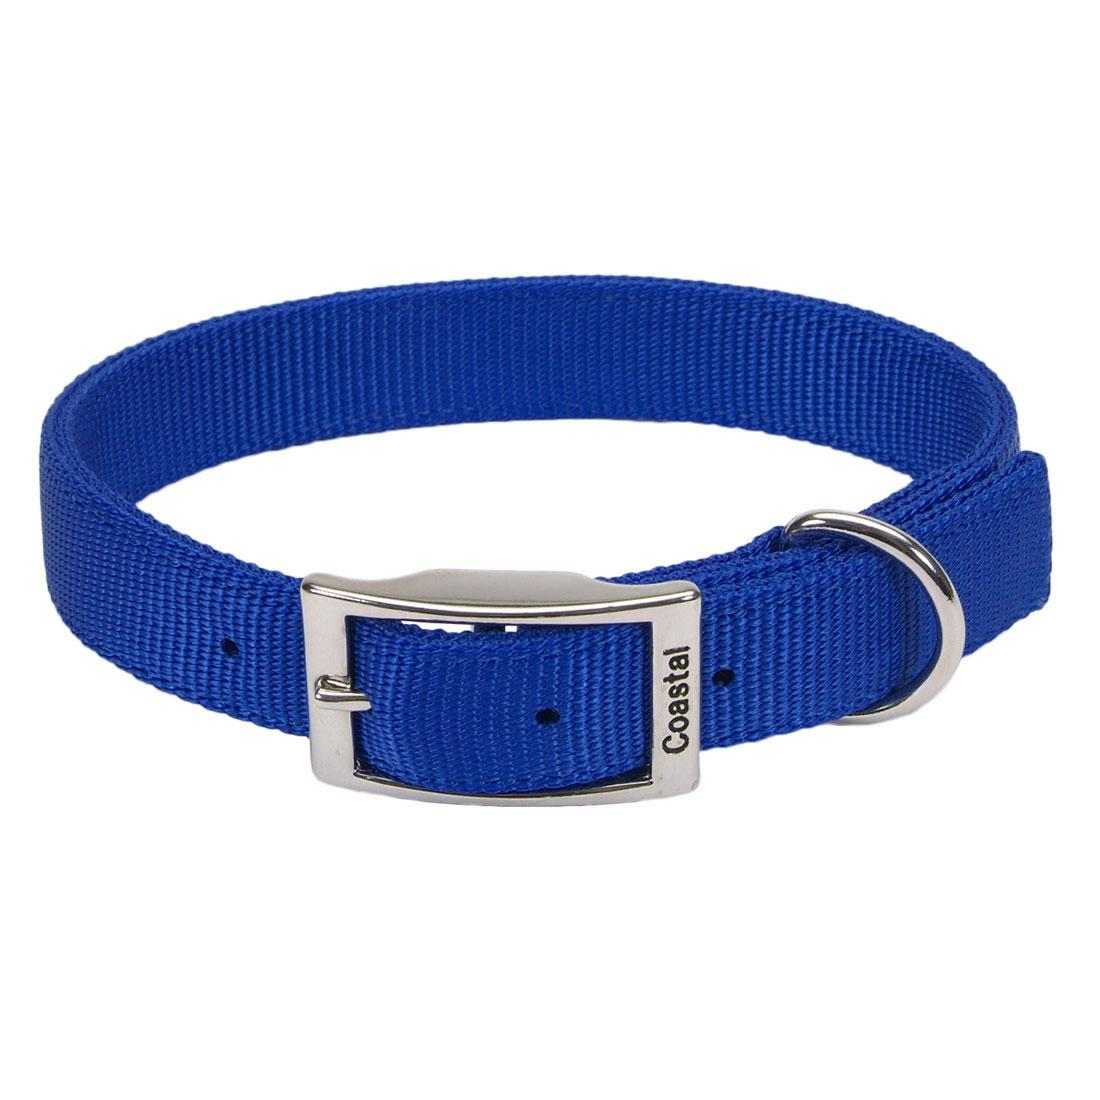 Coastal Double-Ply Nylon Dog Collar, Blue Image